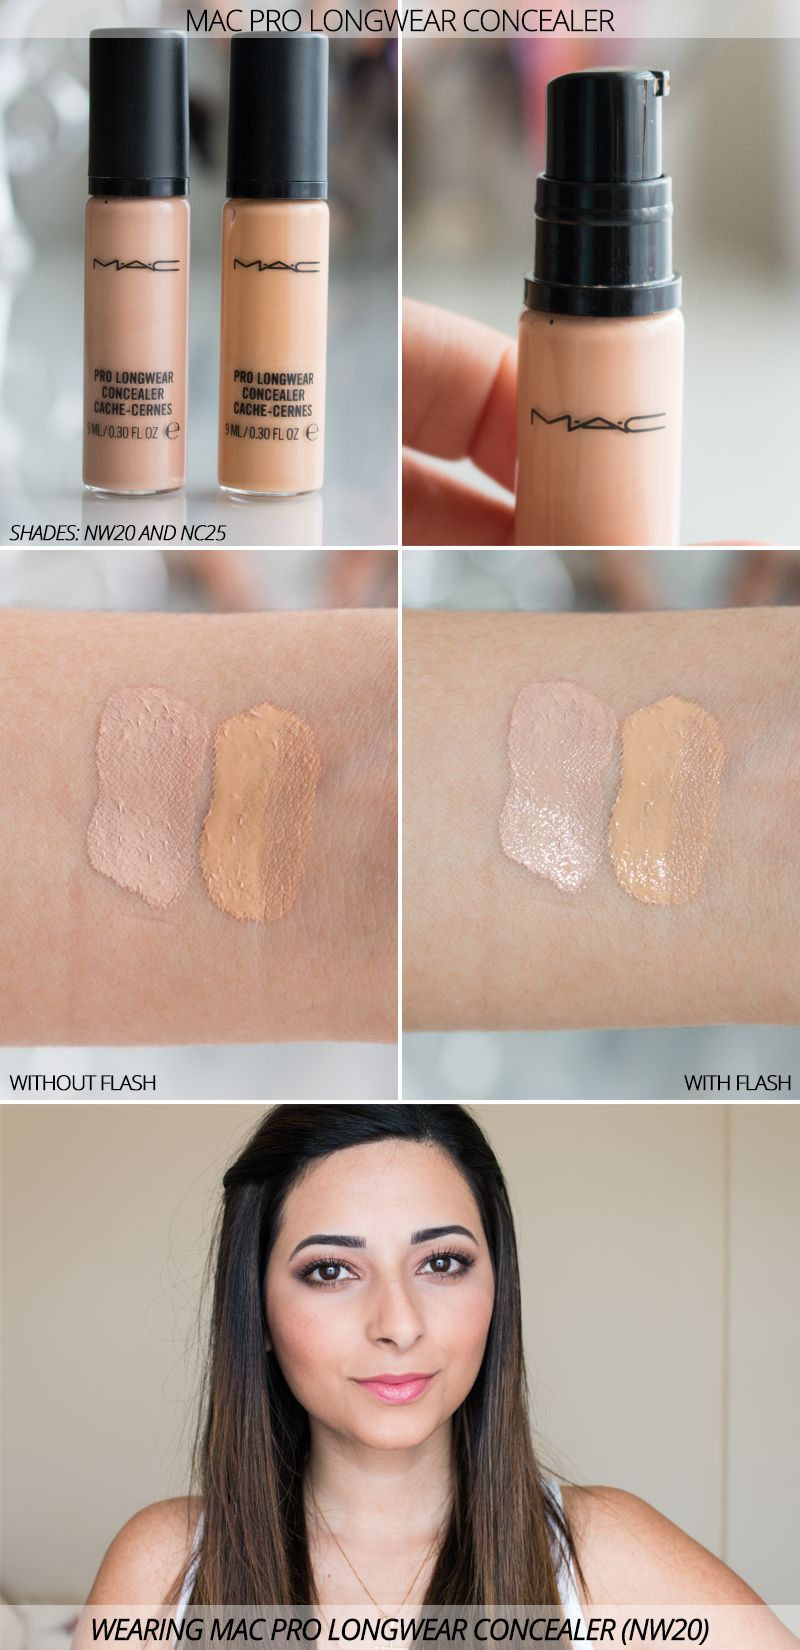 Pro Longwear Foundation by MAC #10